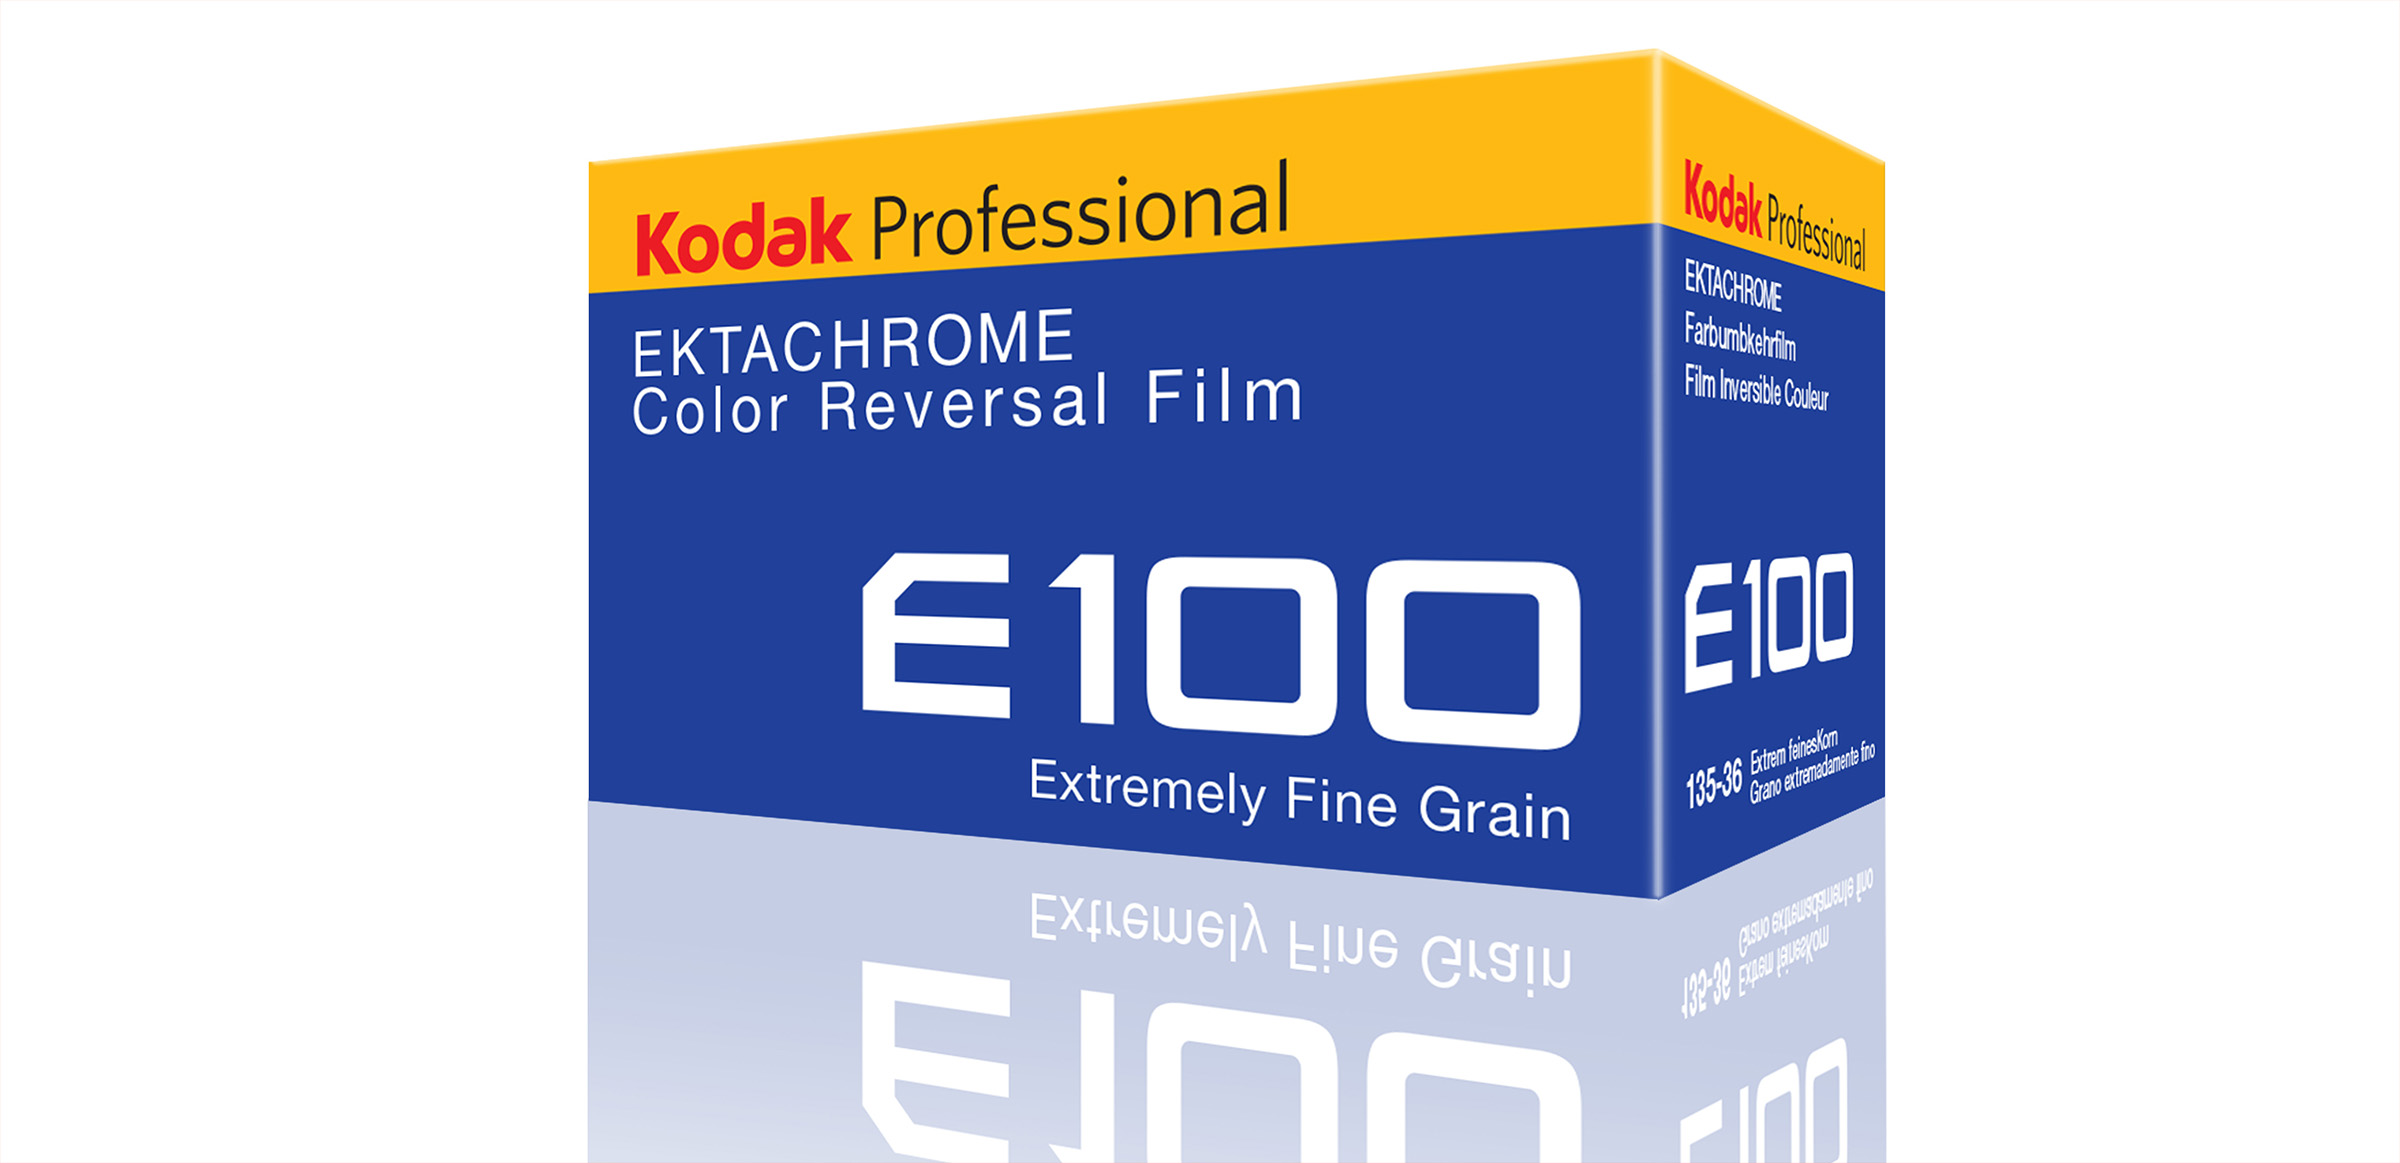 Kodak Plans 120 Ektachrome Coating Trials Next Month